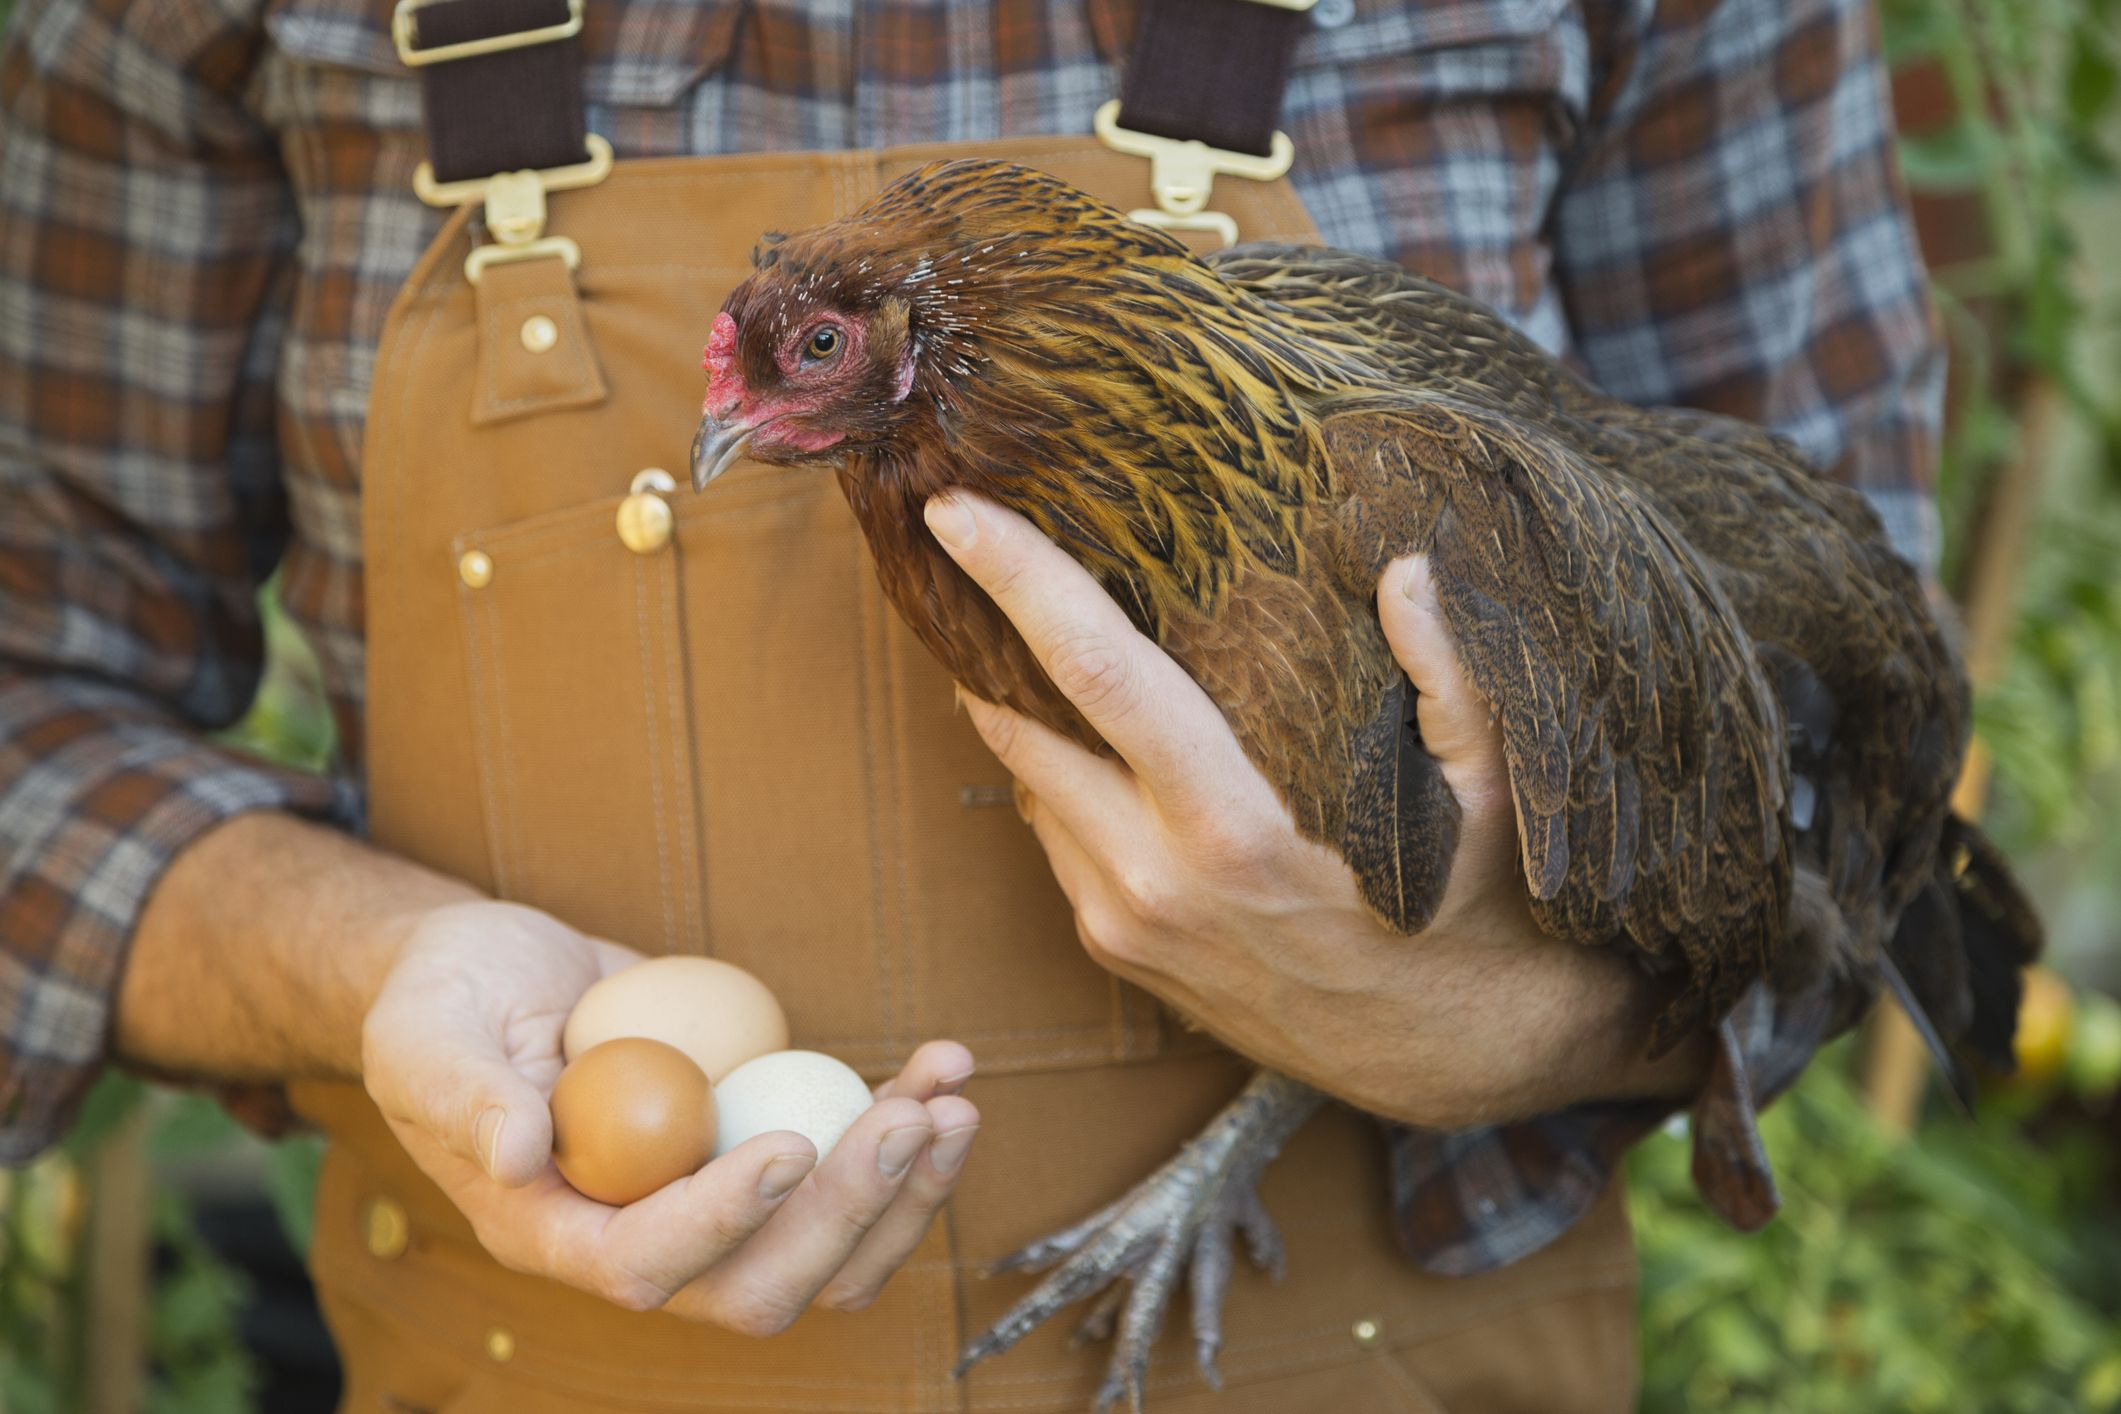 Don't Kiss or Cuddle Chickens, CDC Warns During Salmonella Outbreak